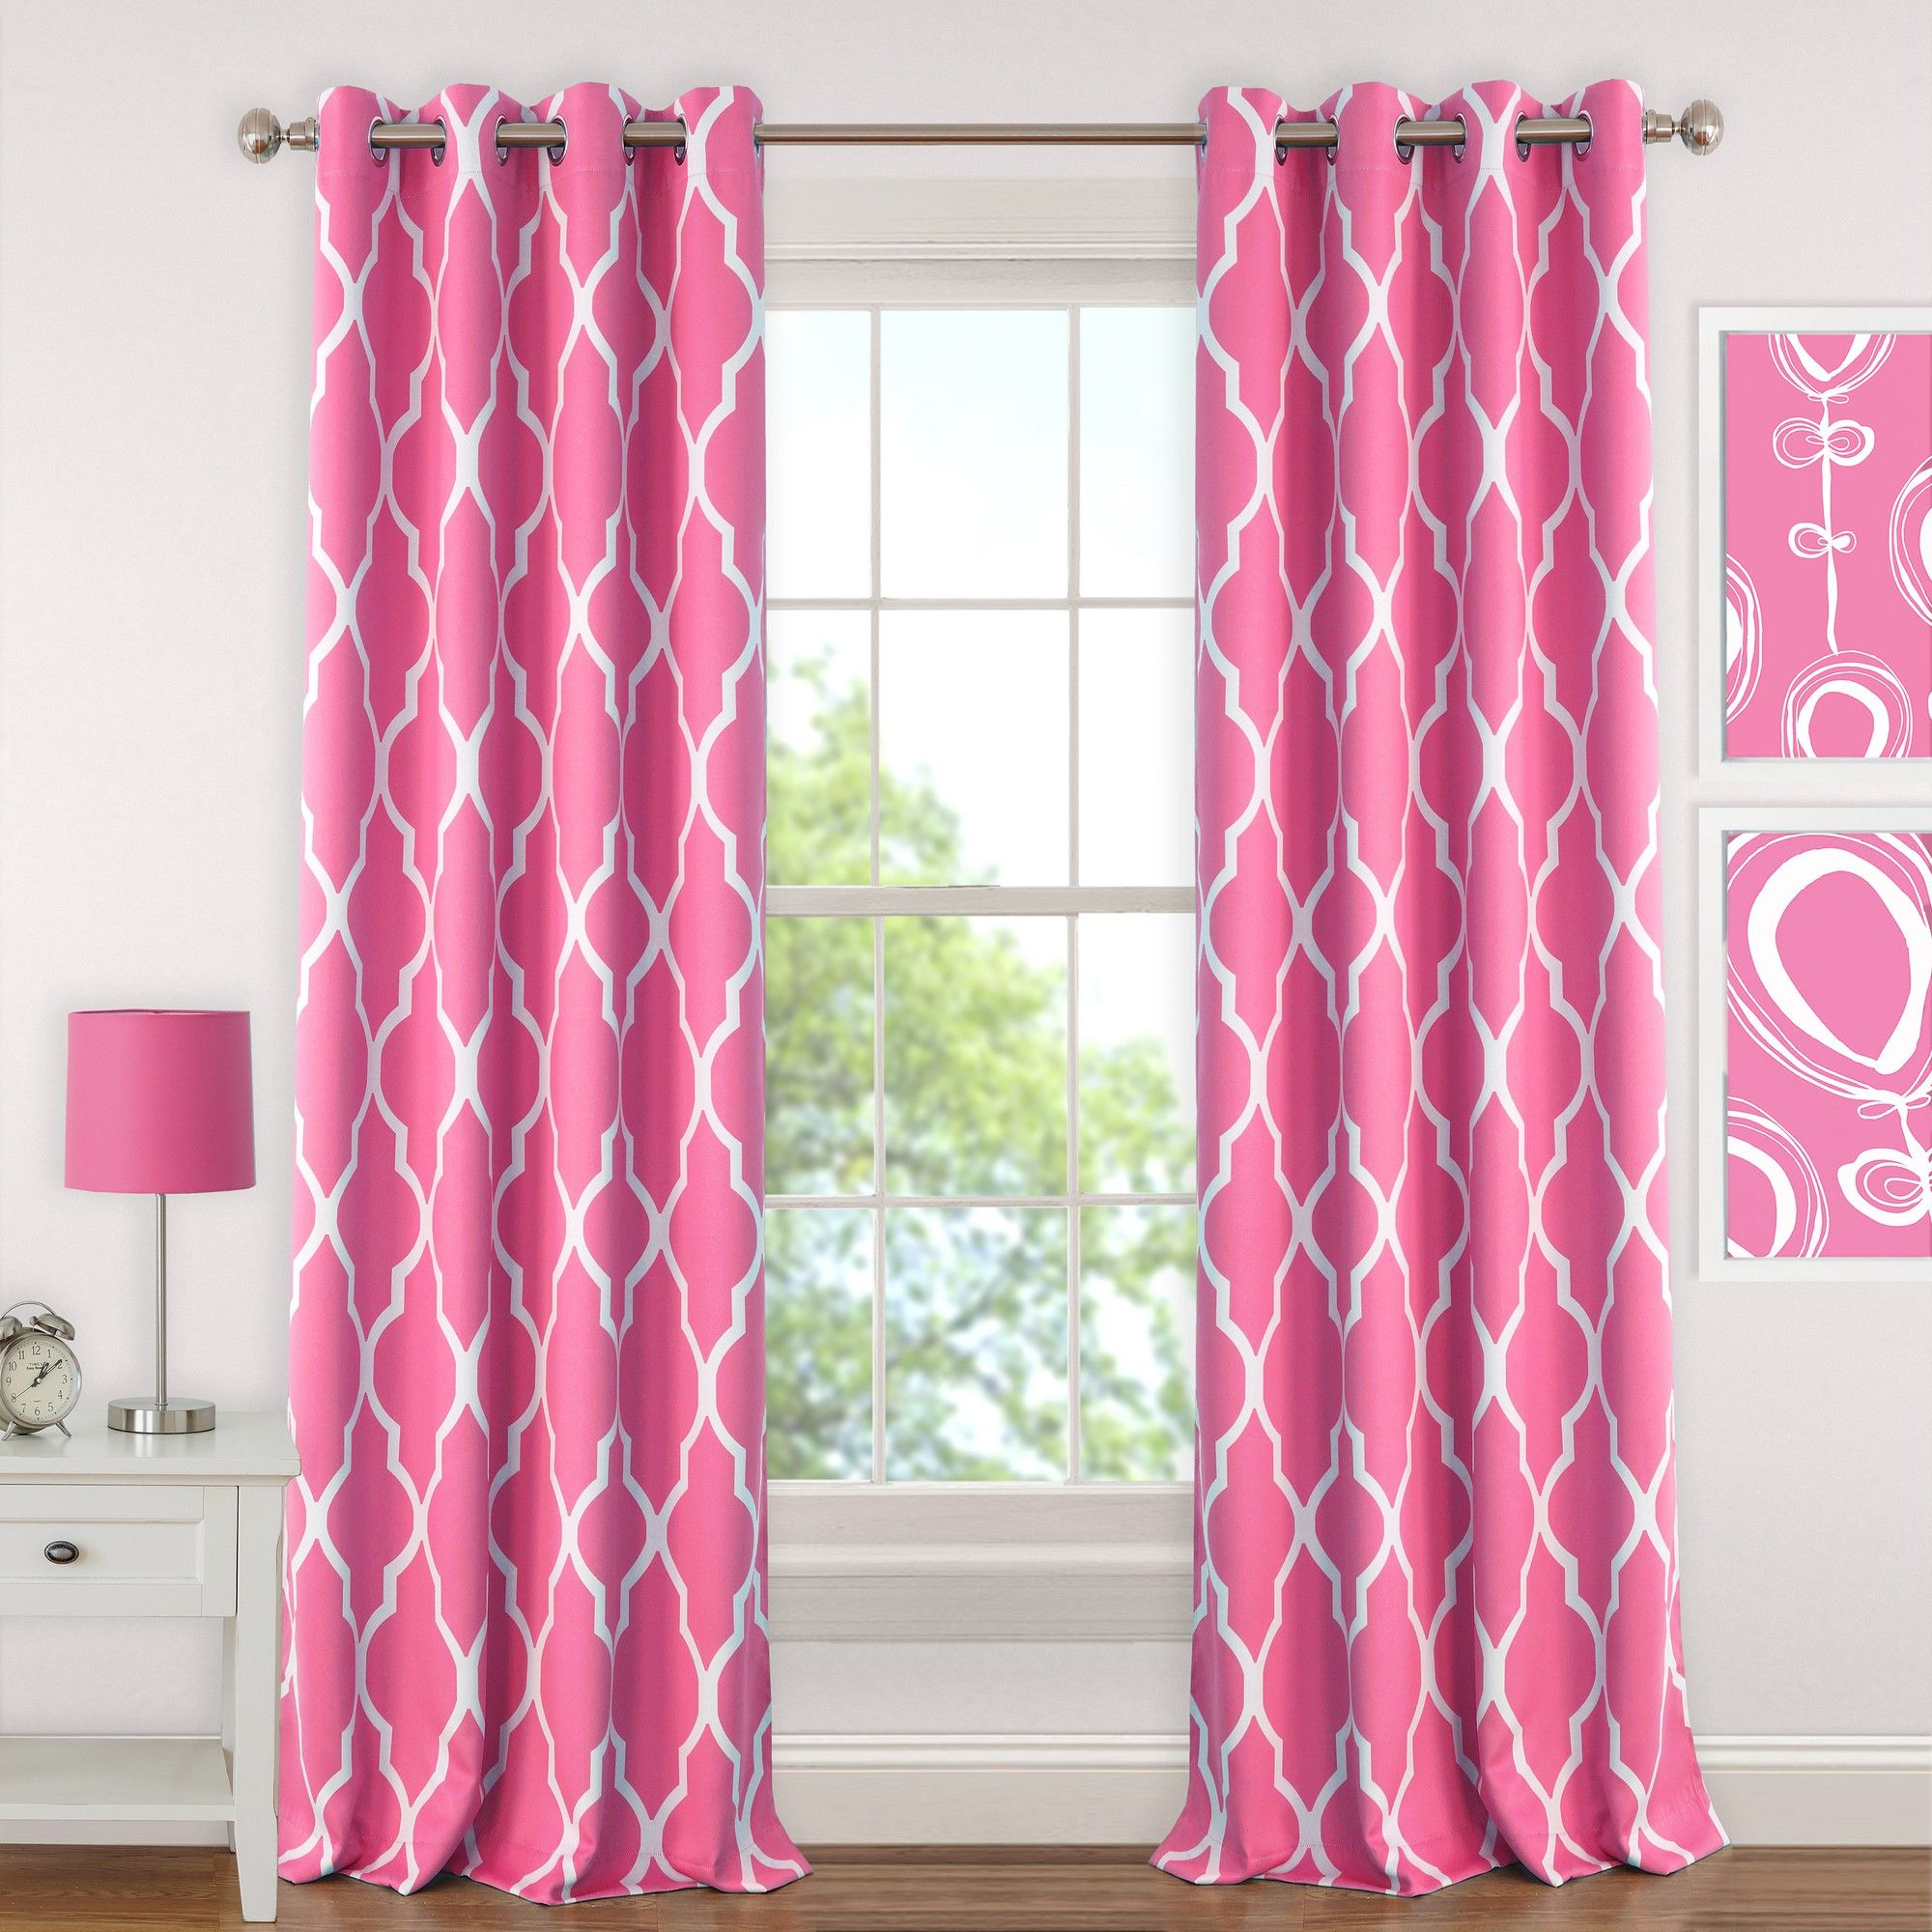 Emery Kids Blackout Window Curtain Panel 52 X 63 Hot Pink